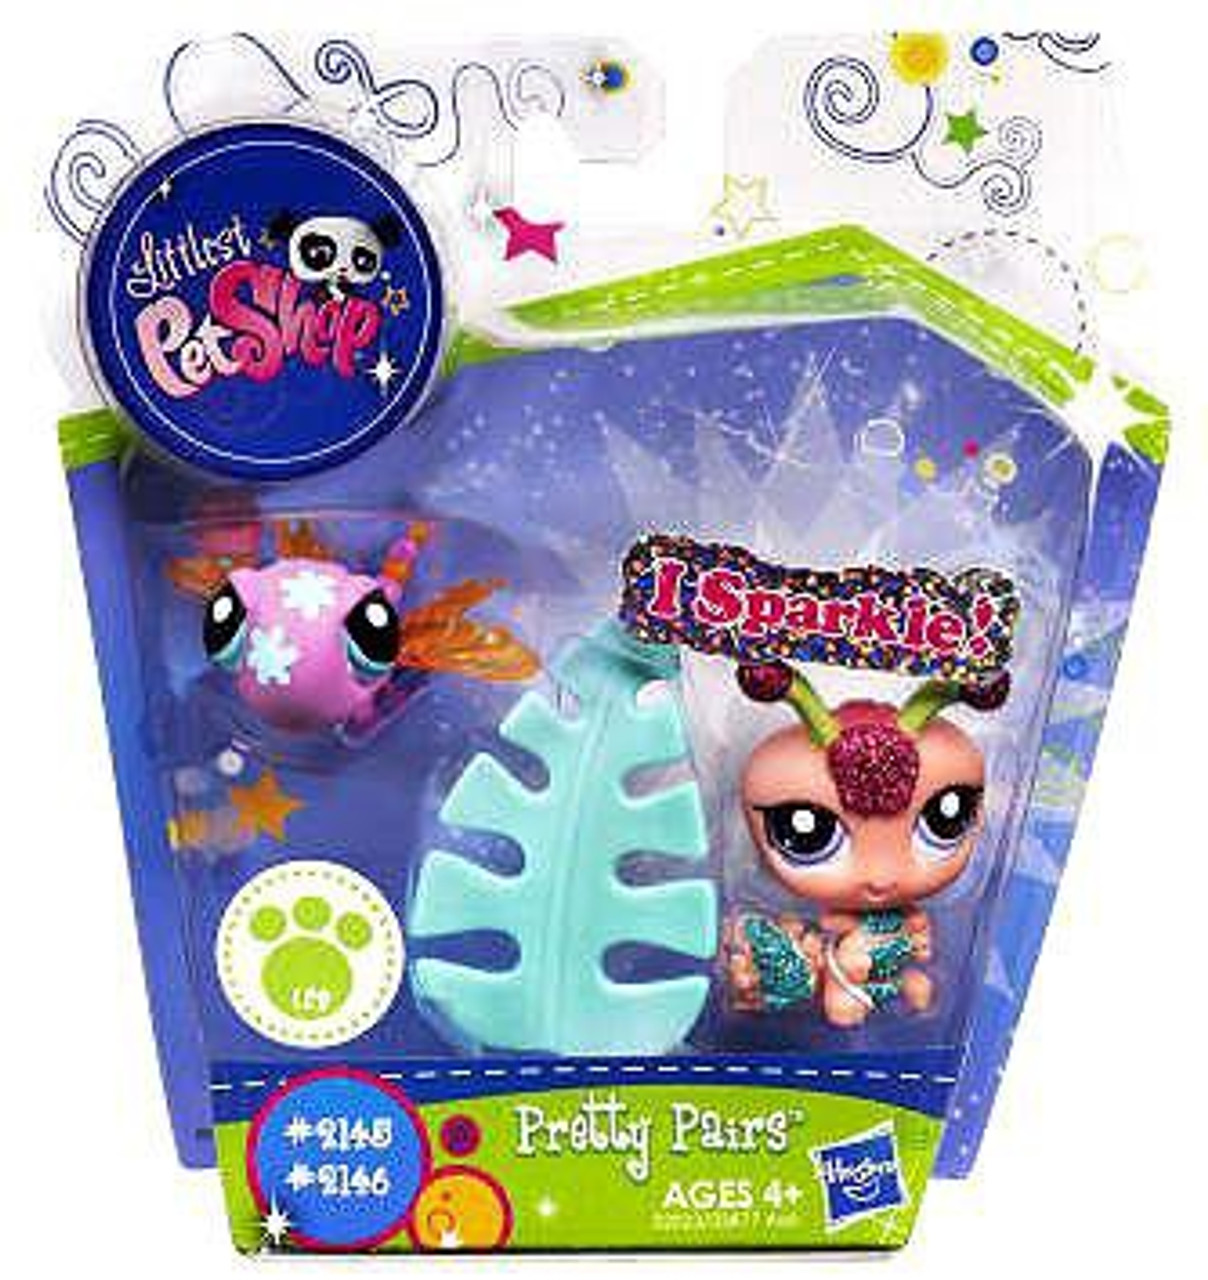 Littlest Pet Shop Pretty Pairs Dragonfly & Centipede Figure 2-Pack #2145, 2146